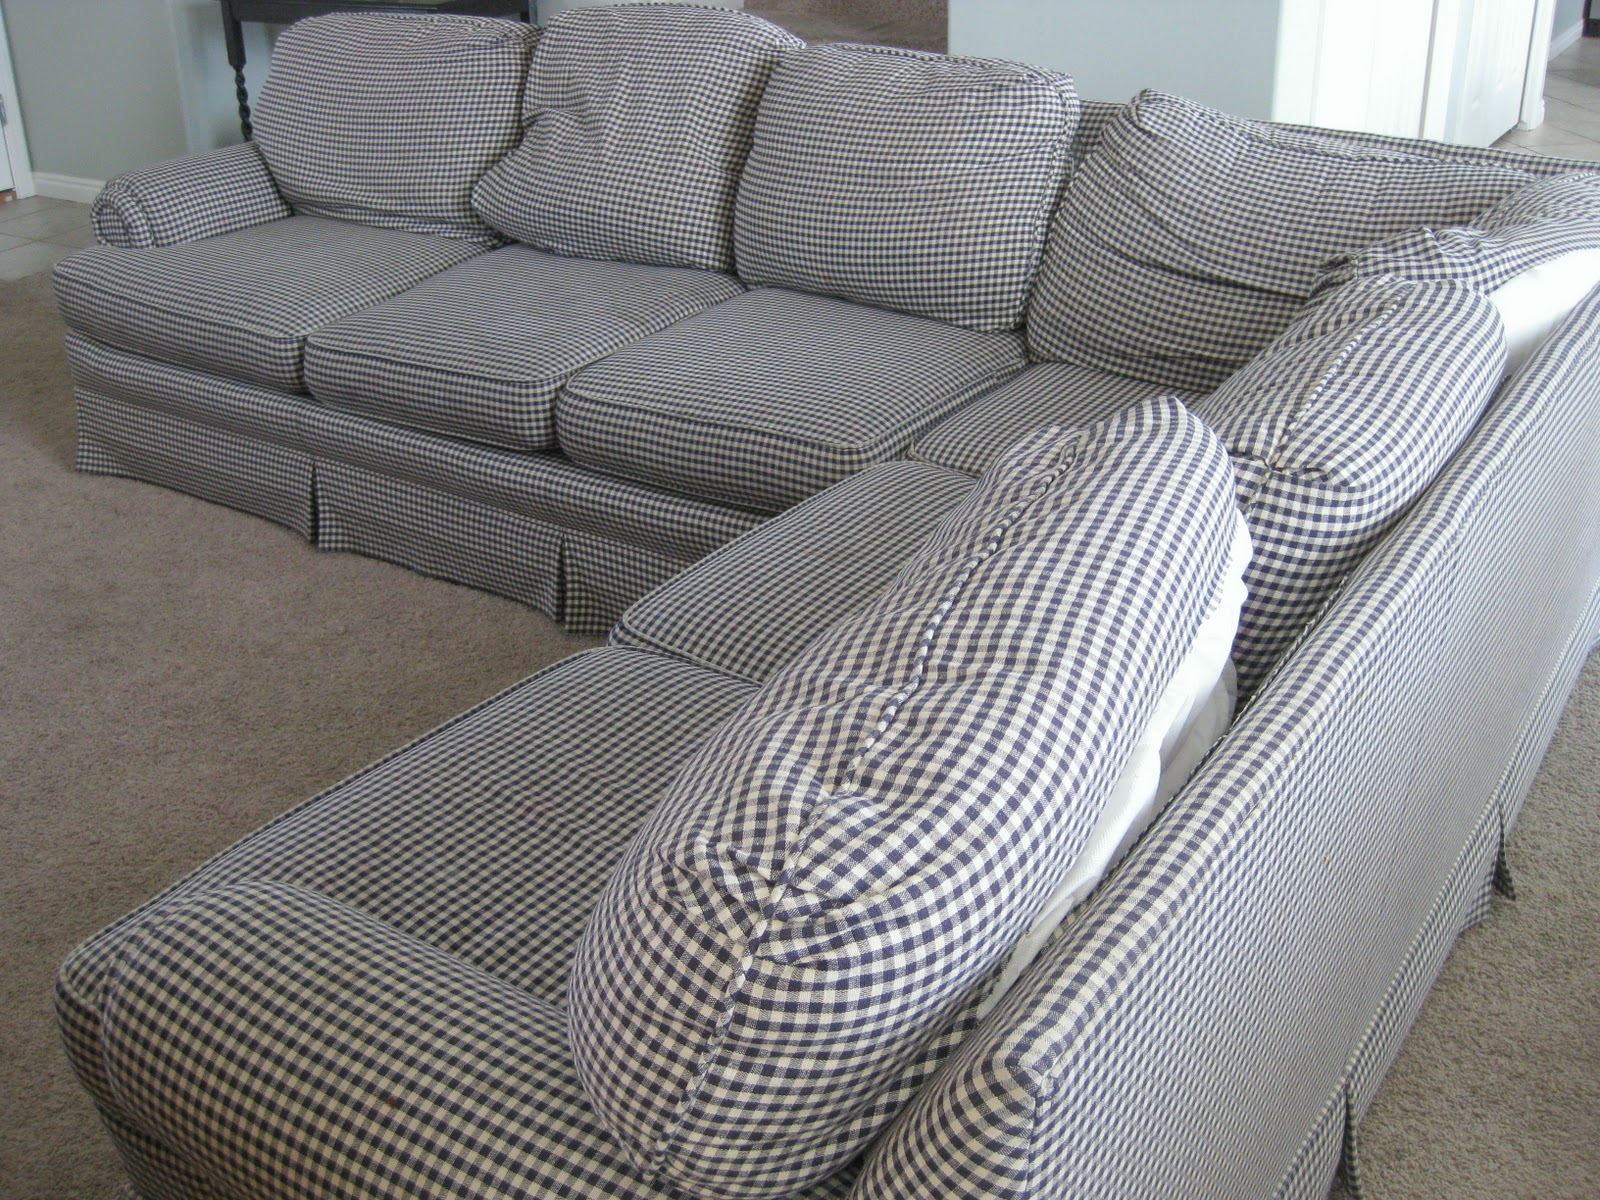 with for canvas casual sofa pin upholstery densely good slipcovers from custom duck or cotton than woven look the slipcover canvases more and a durable big love oz made super